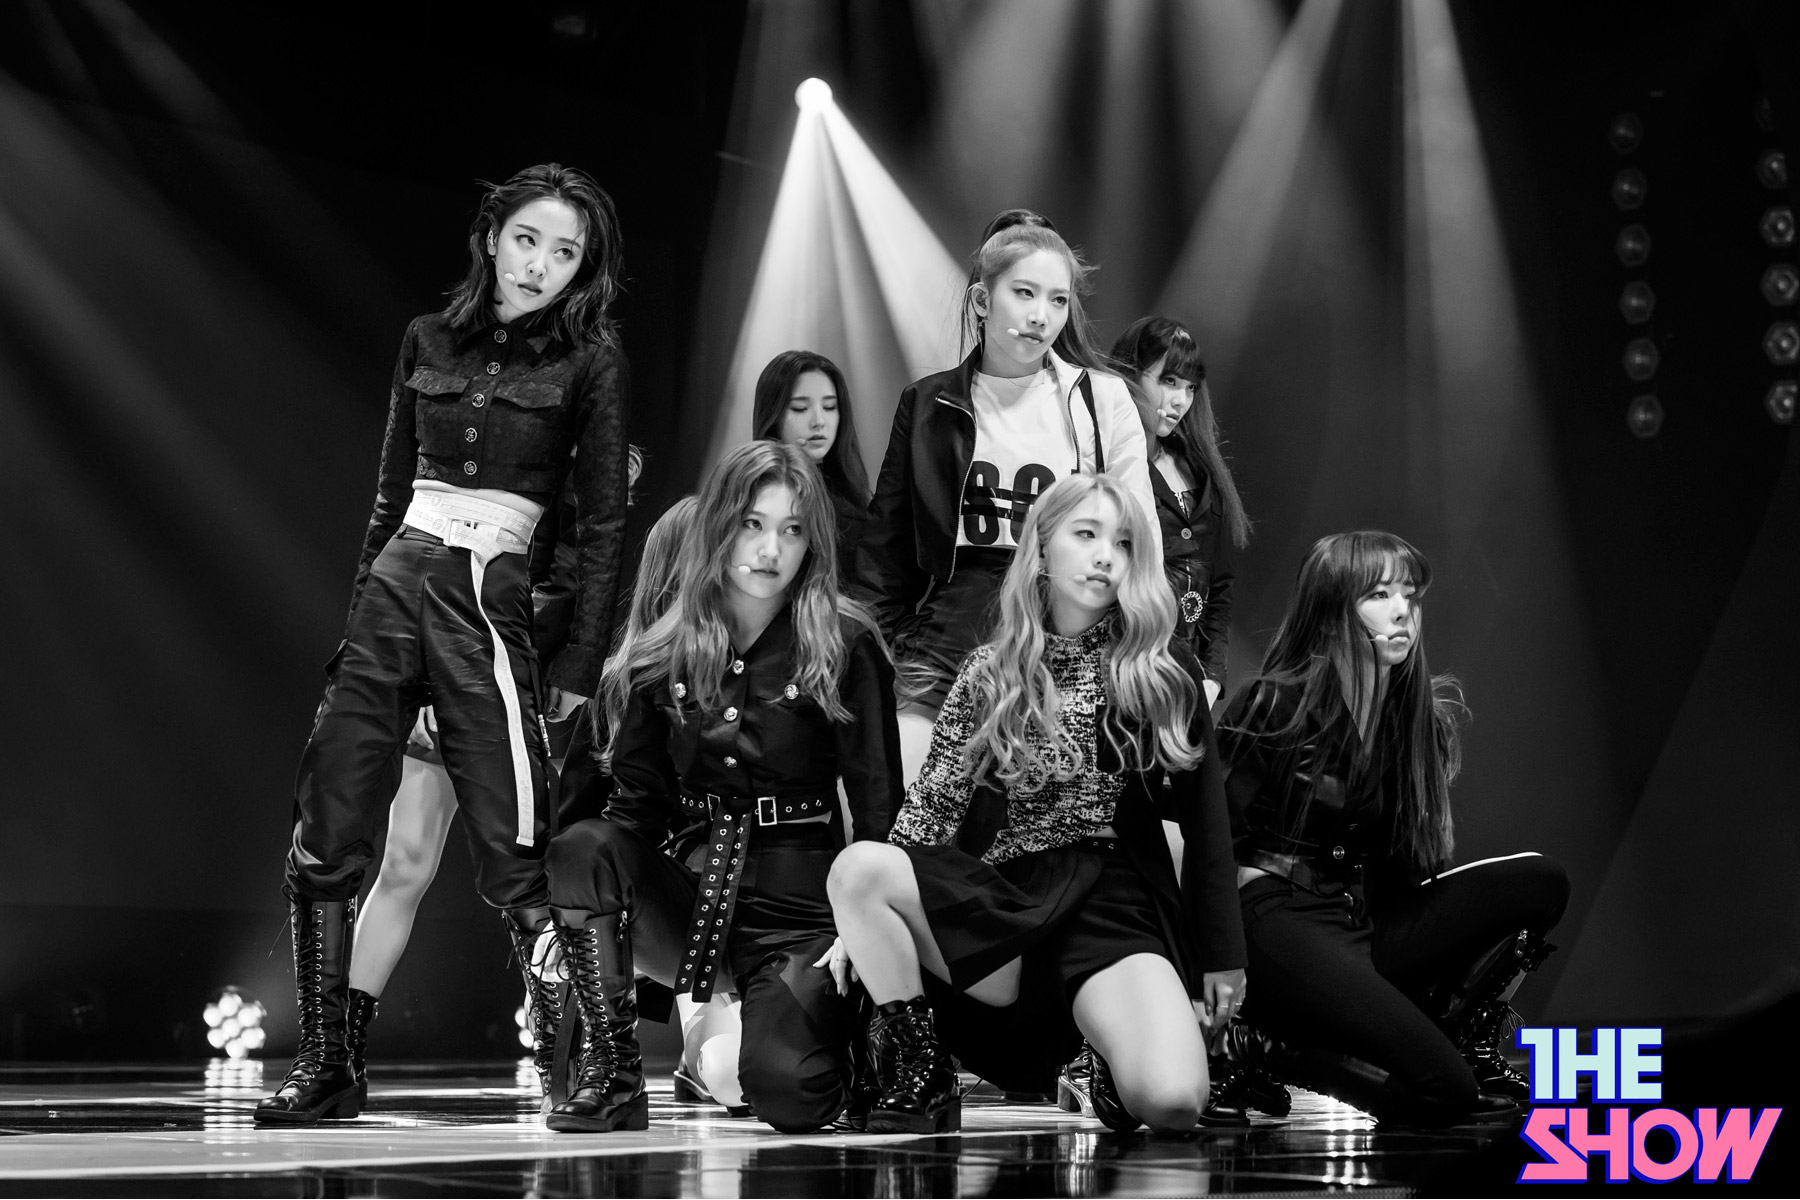 200212 THE SHOW Stage So What LOONA 1.jpg